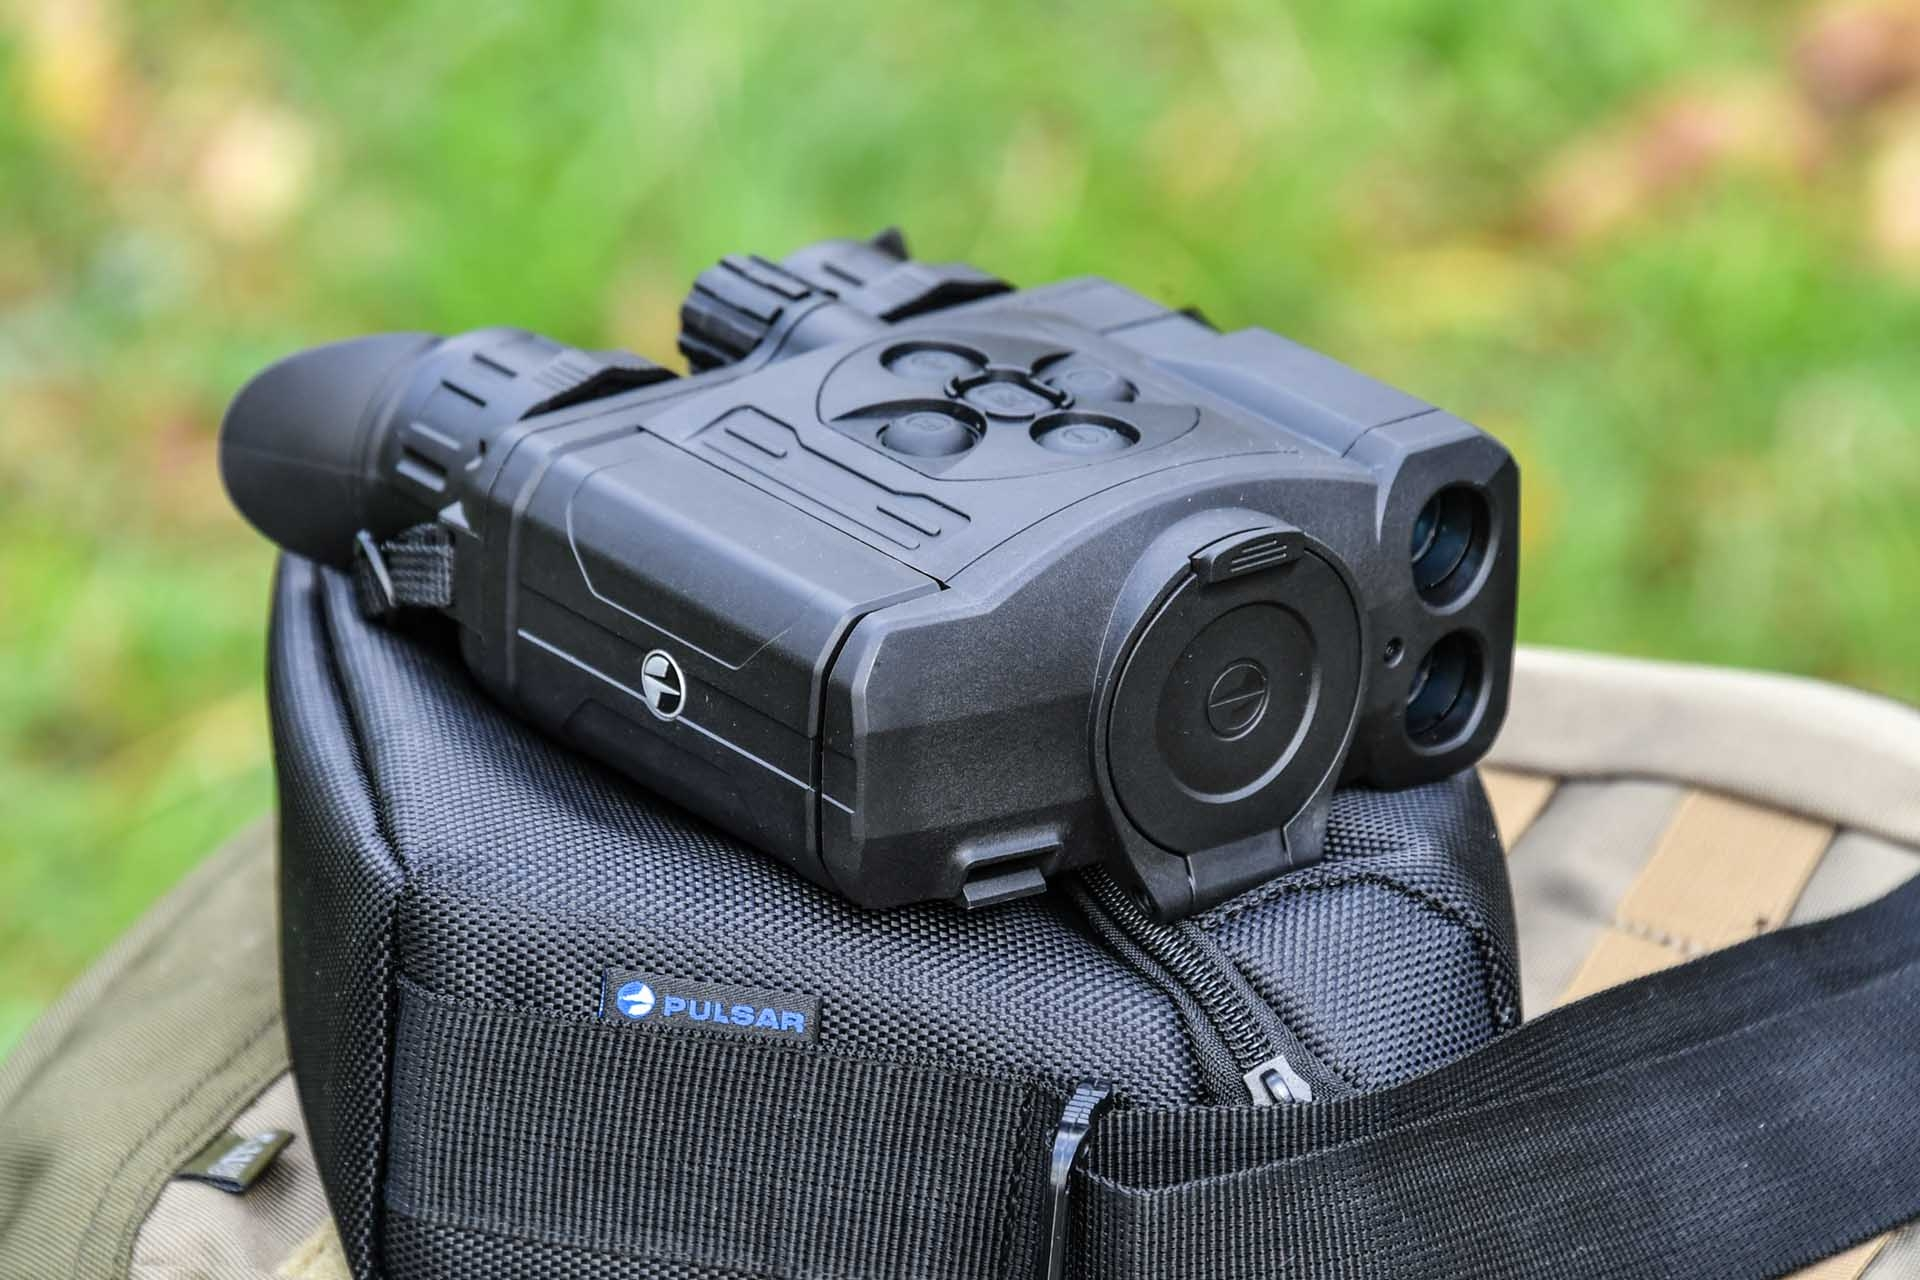 Pulsar Accolade XP50 LRF thermal binoculars with its Cordura carry case.